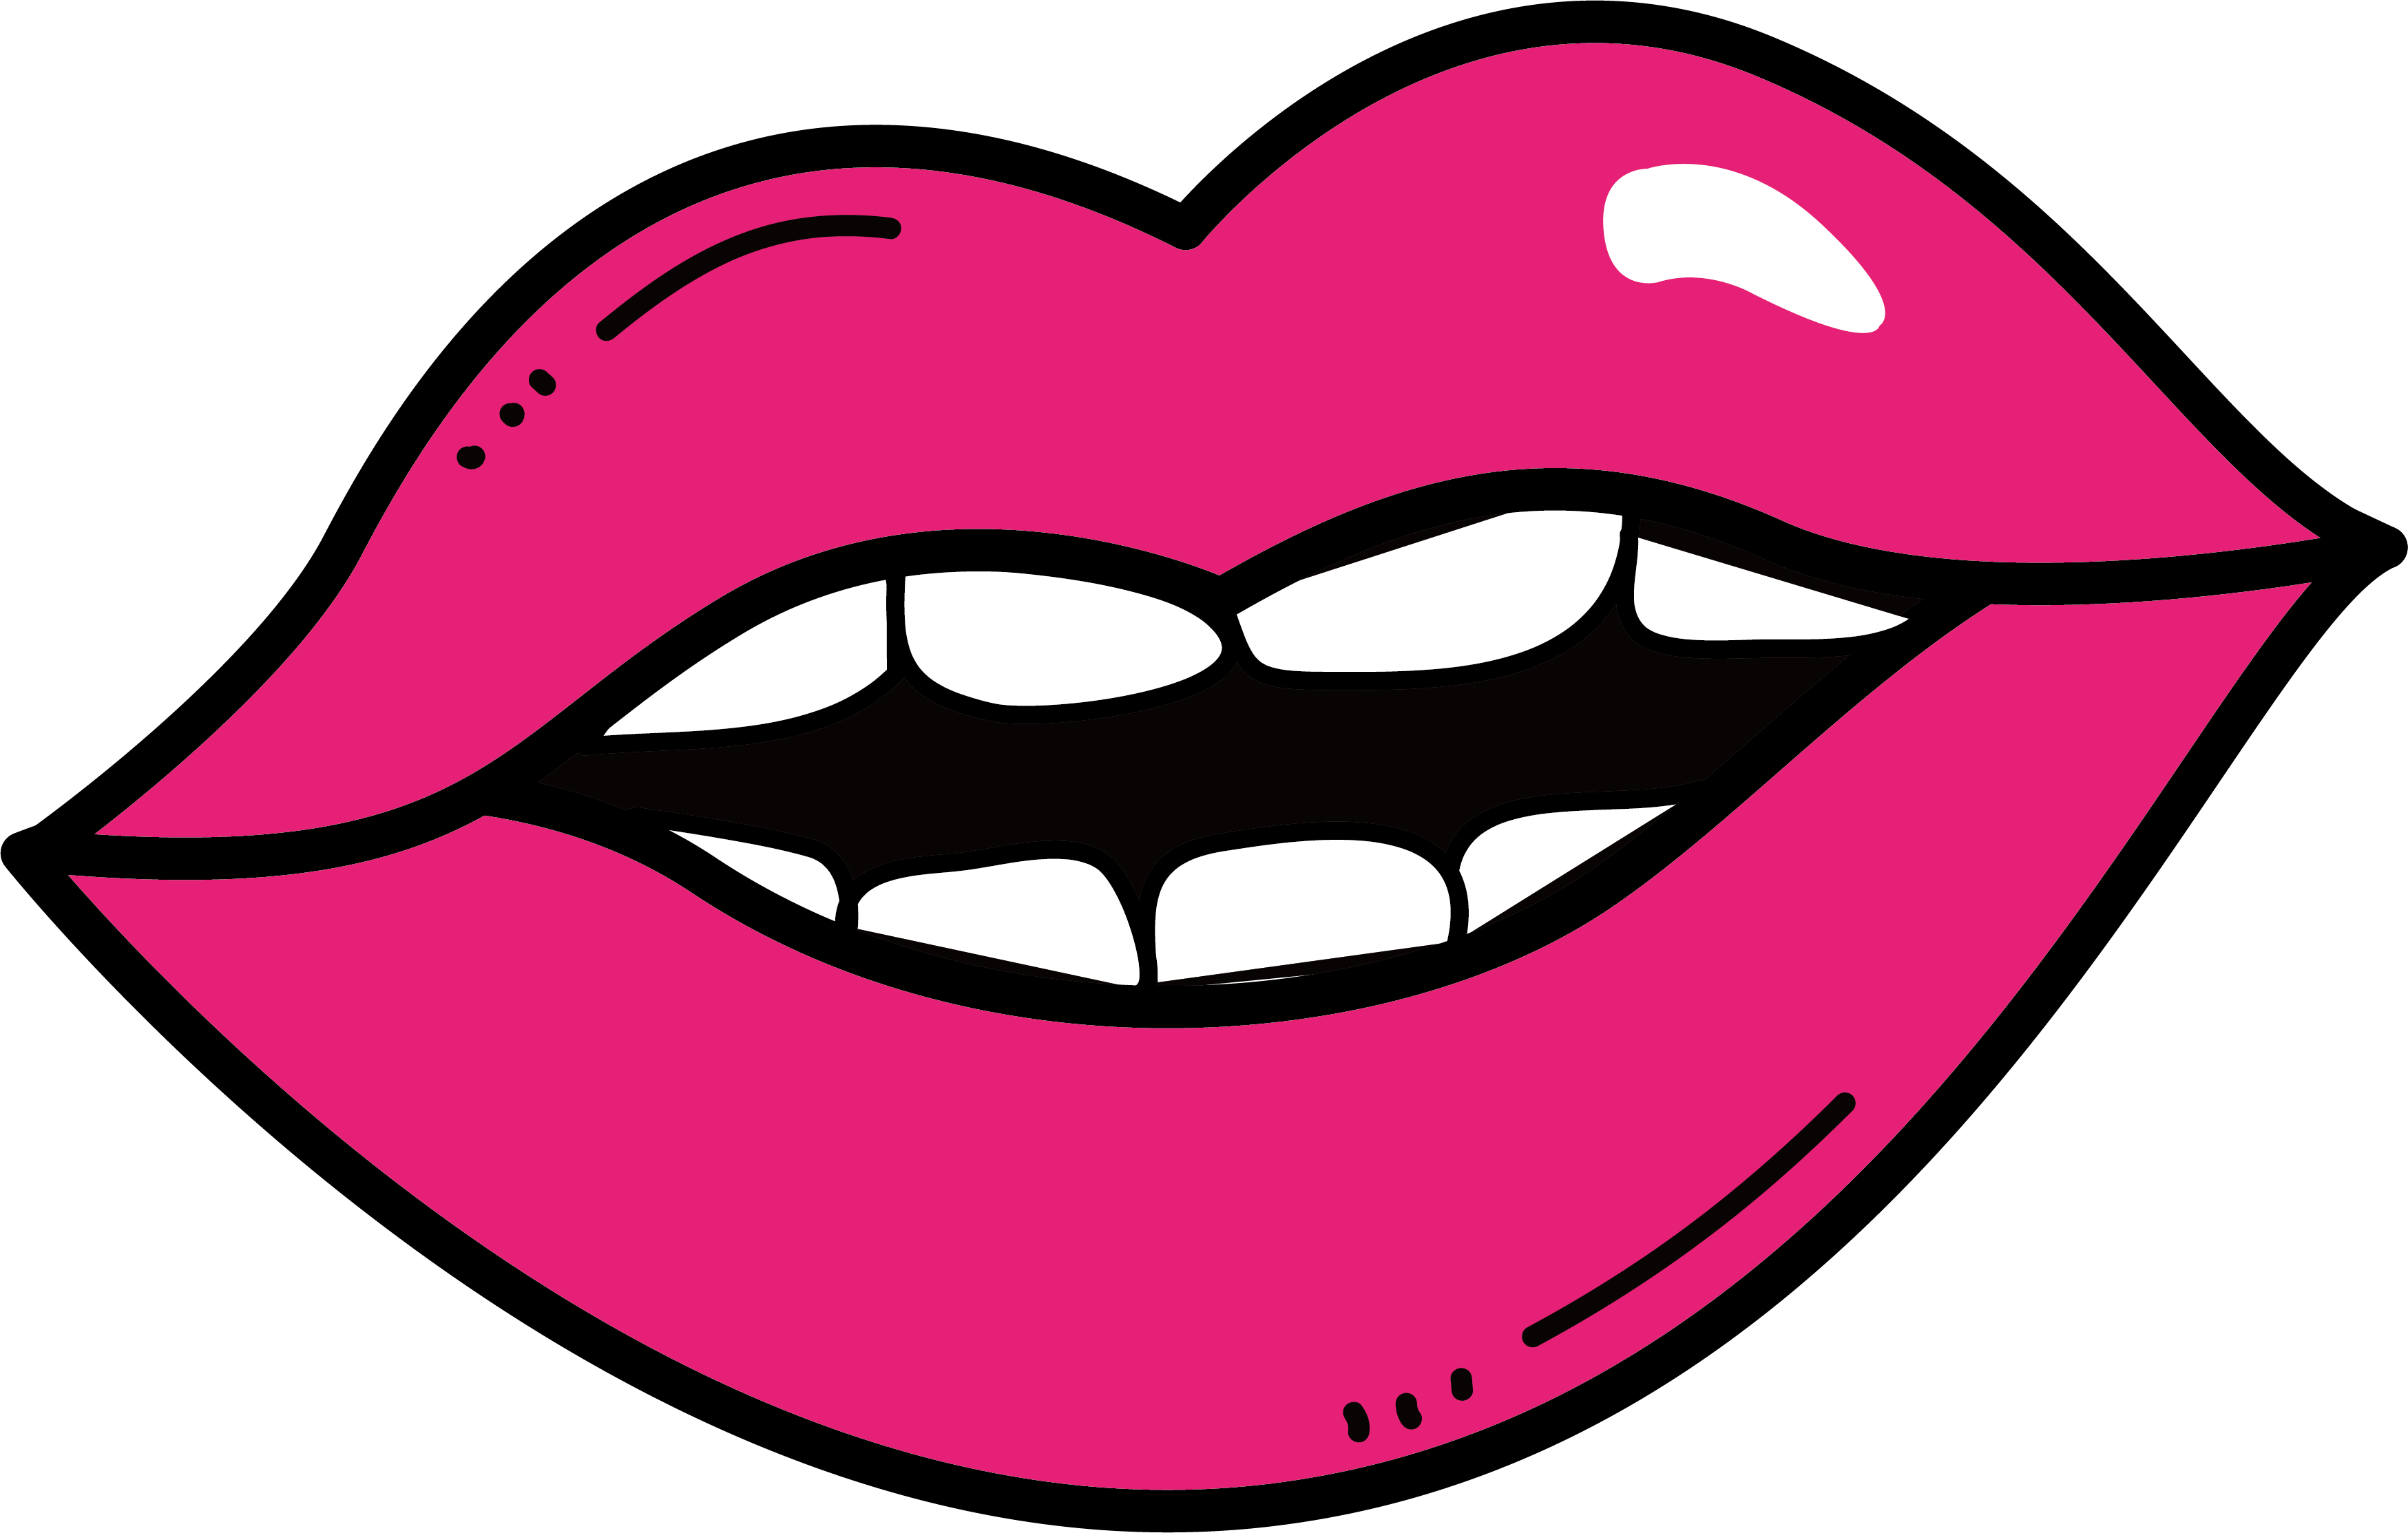 Drawing flannel lip. Clip art pink lips